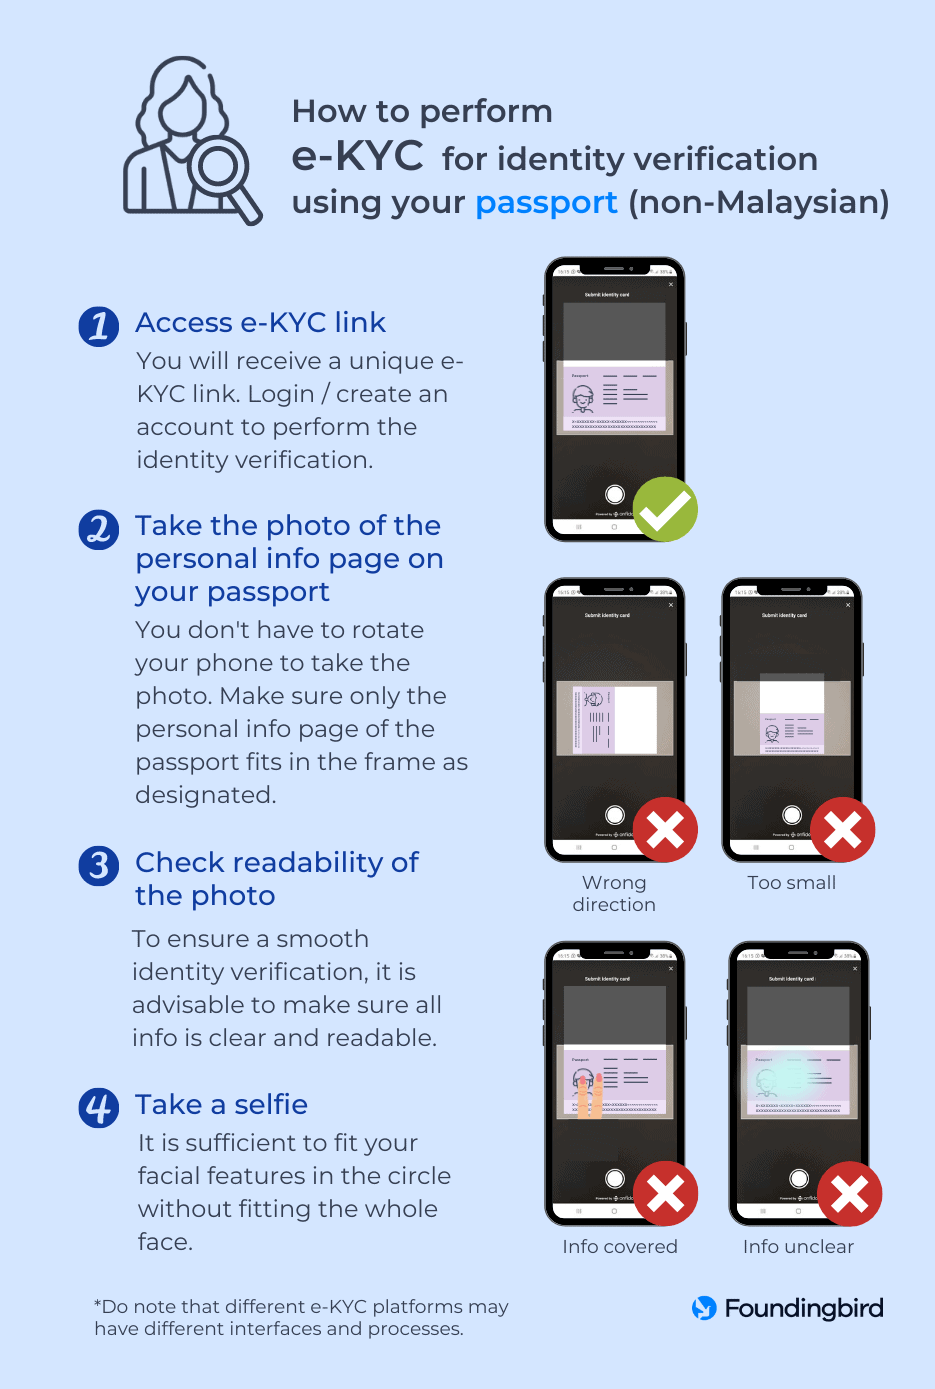 How to perform e-KYC for identity verification using a passport for non-Malaysians - Infographic